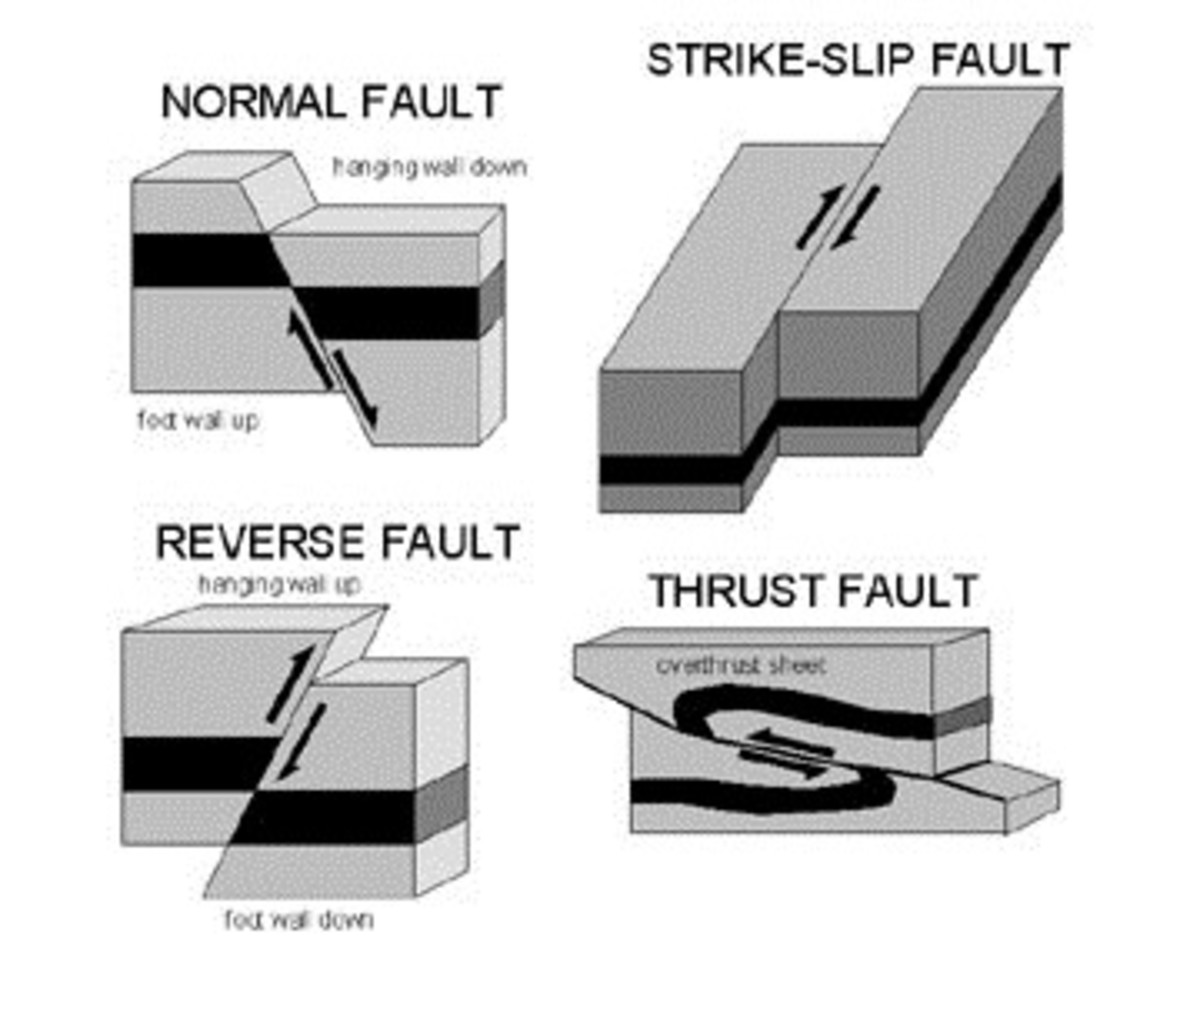 The different types of faults.